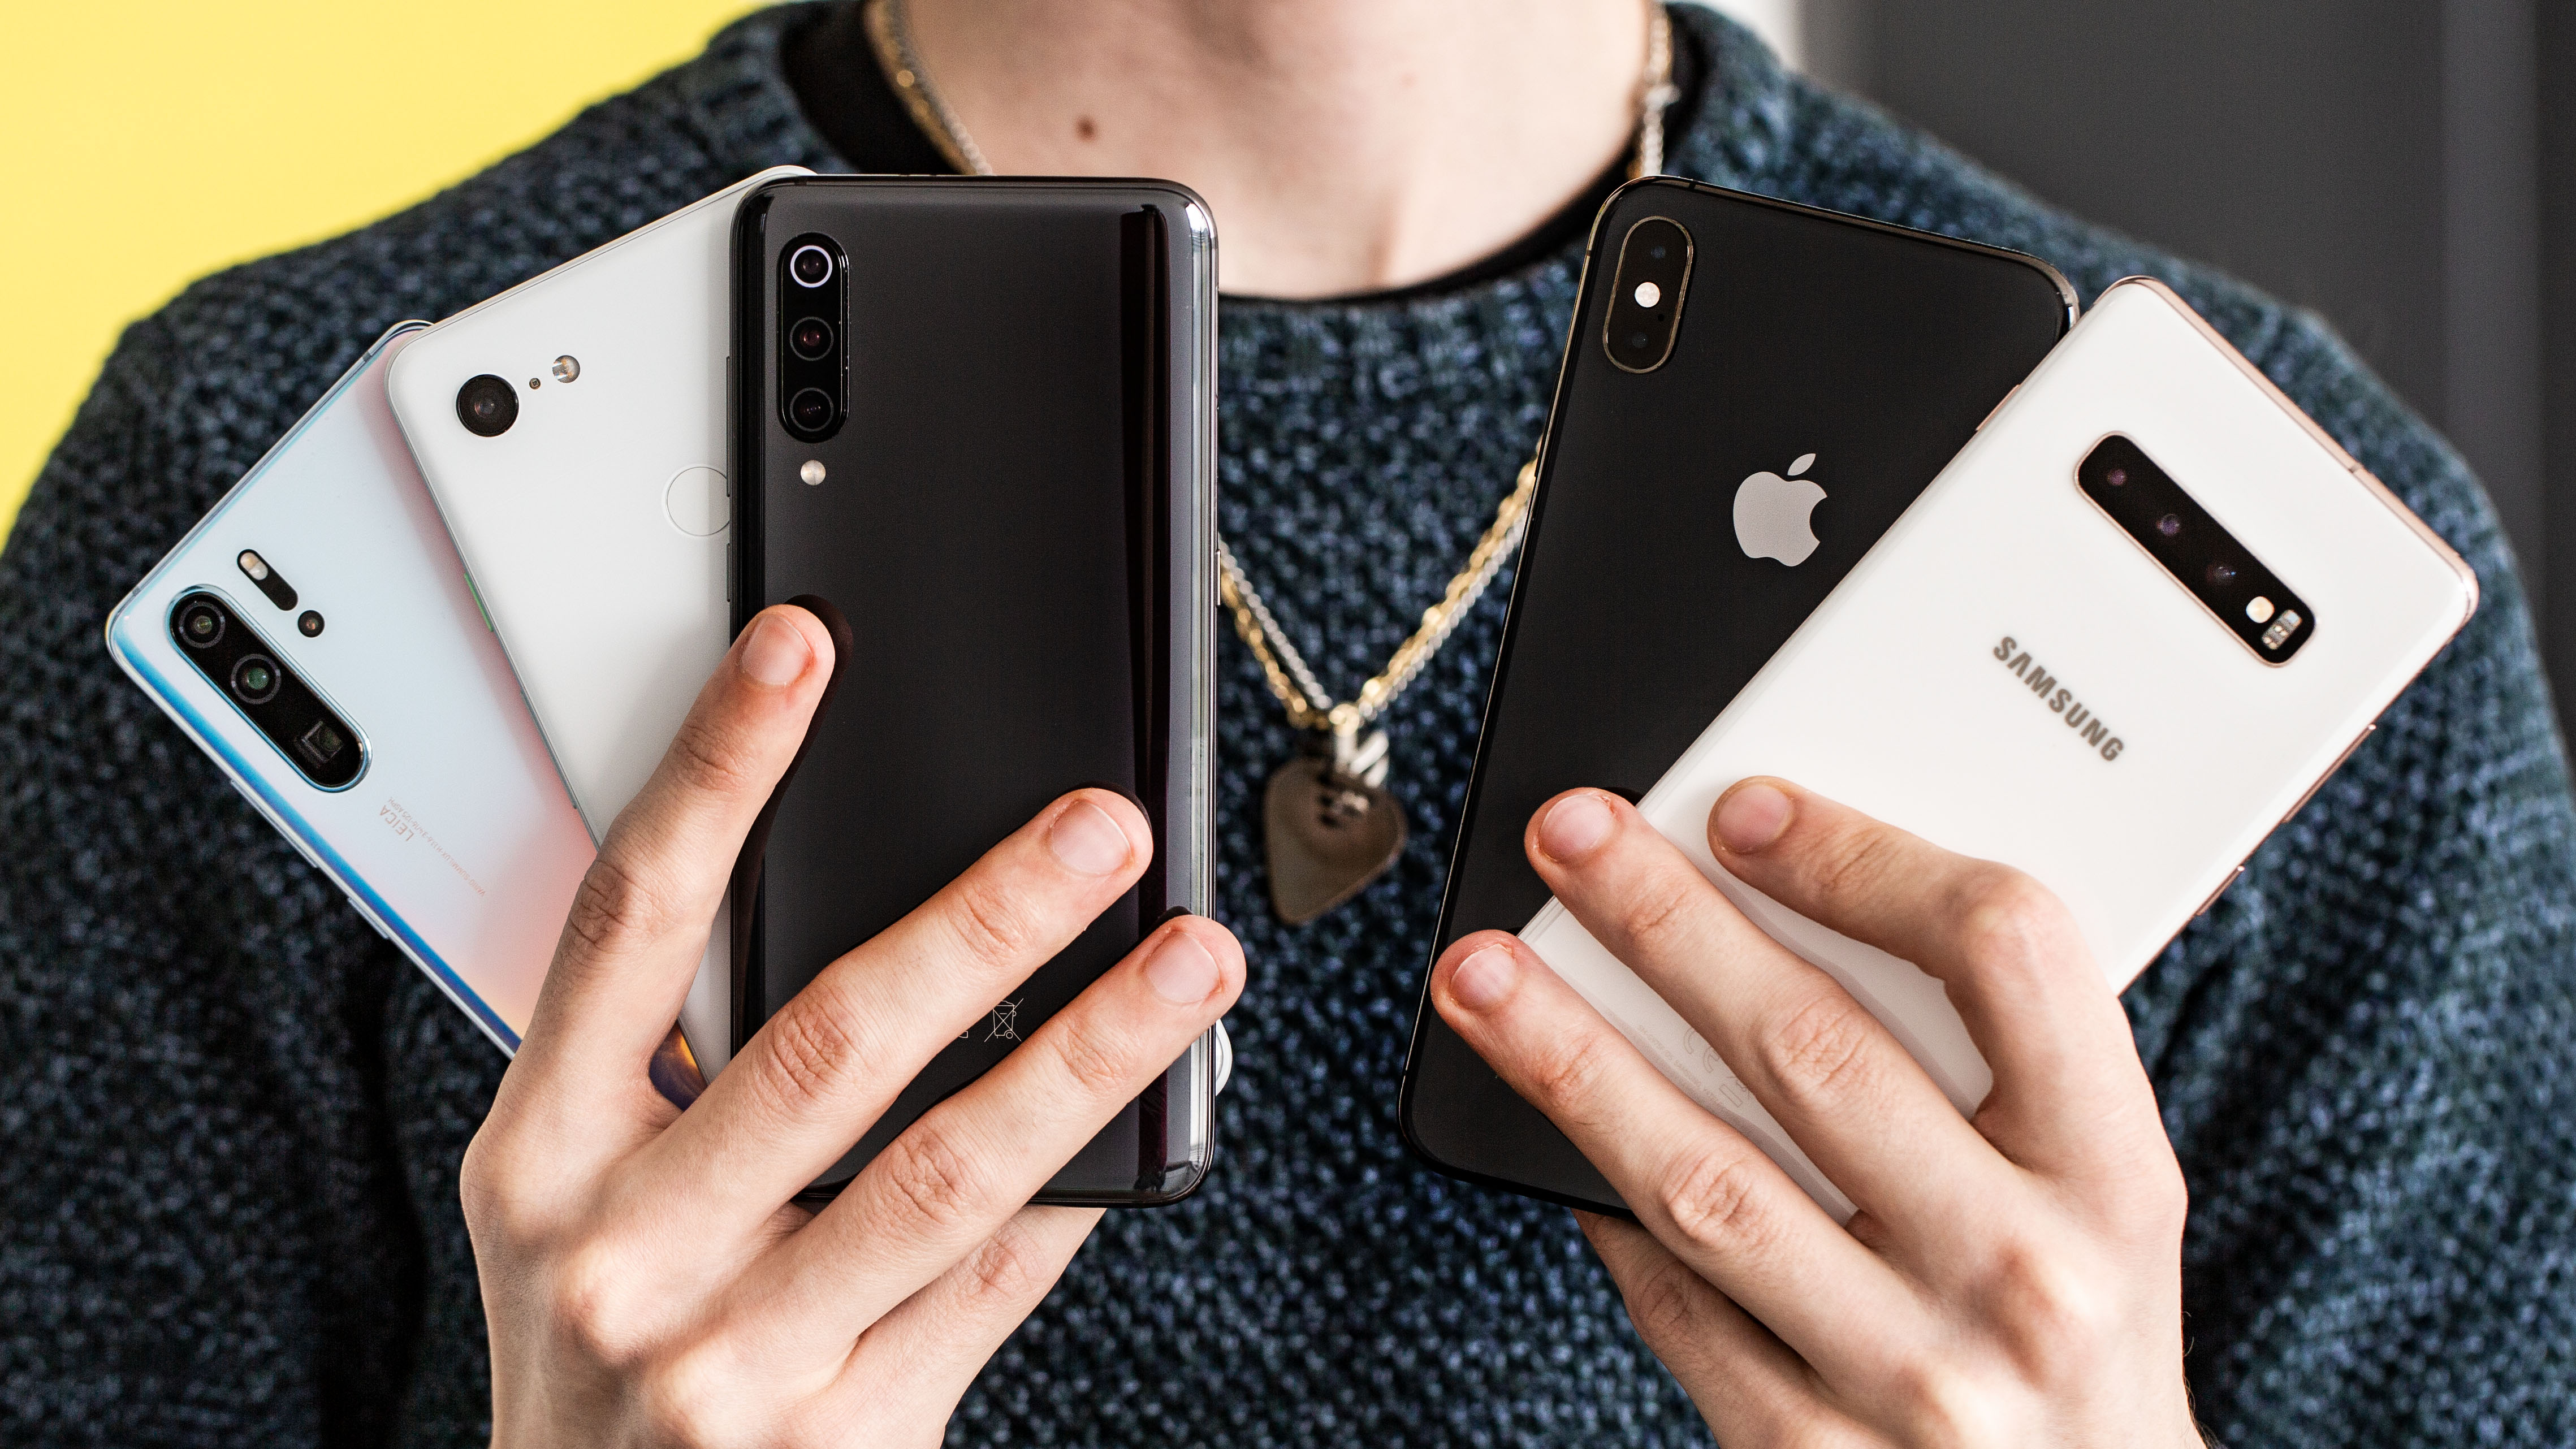 New mid-range phone vs old flagship: What is better?